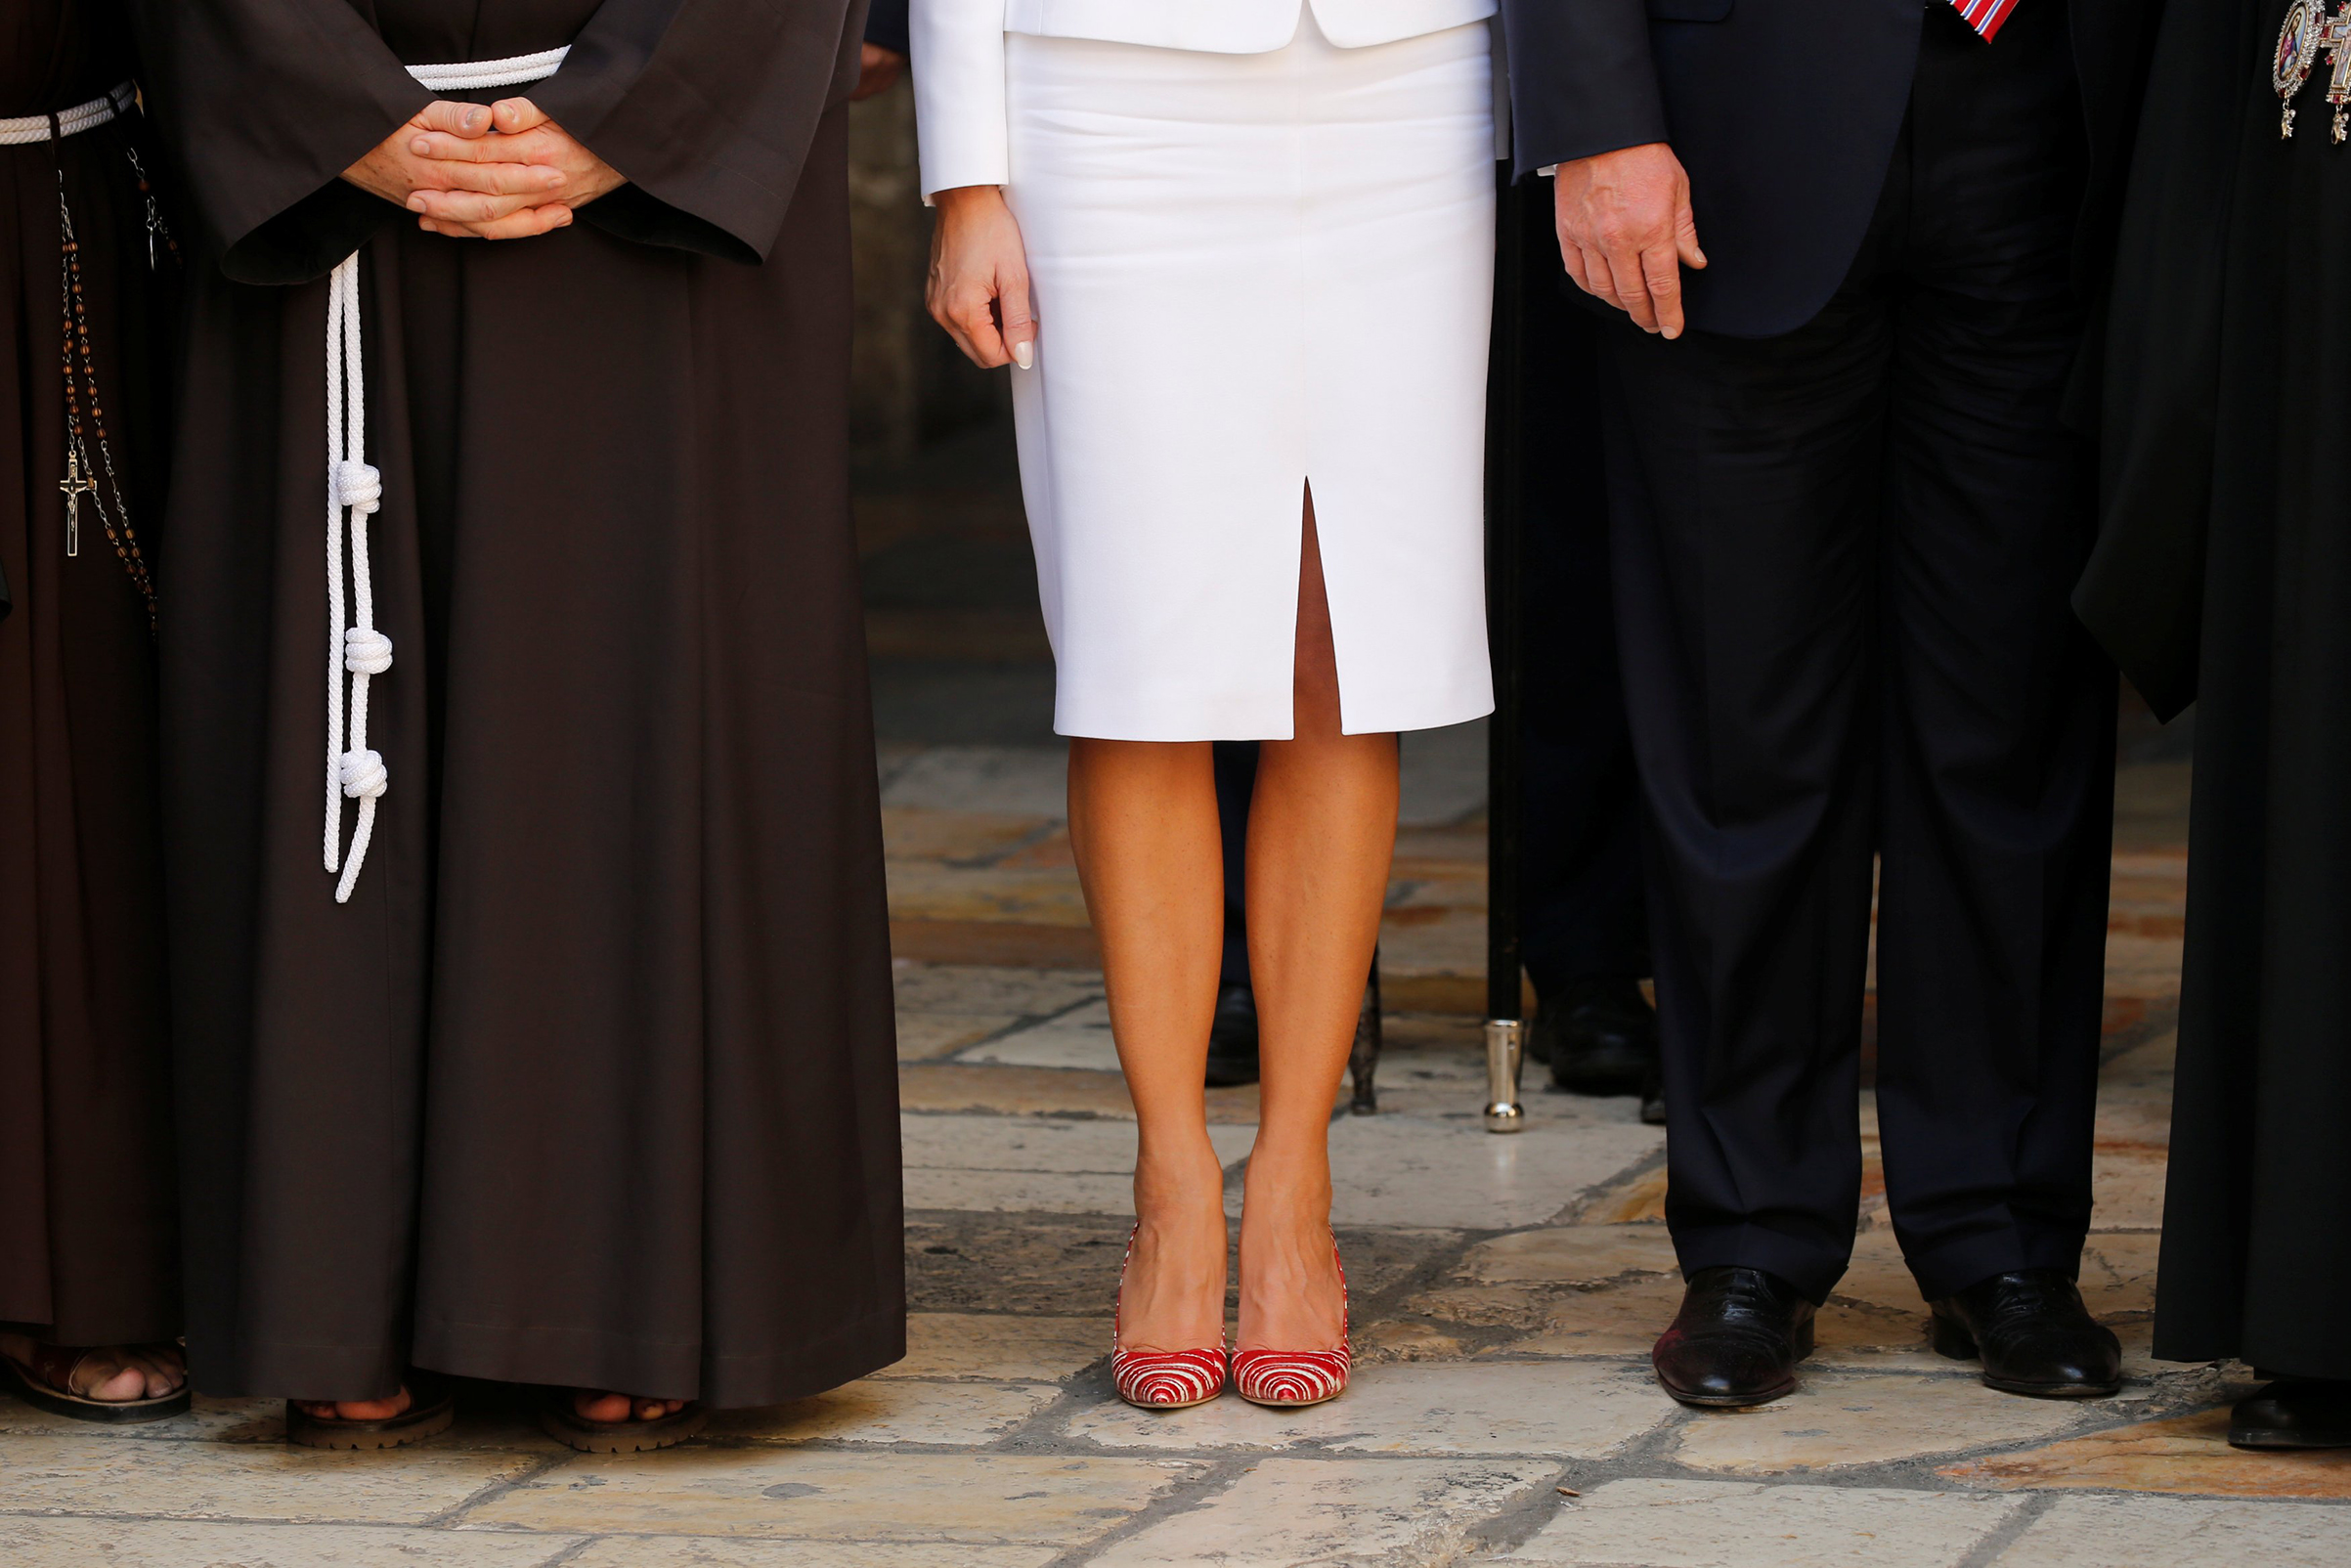 First lady Melania Trump wearing white Michael Kors Collection suit and Manolo Blahnik's red and white striped stilettos, stands next to members of the Christian clergy during her visit with her husband U.S. President Donald Trump to the Church of the Holy Sepulchre in Jerusalem's Old City,  May 22, 2017.